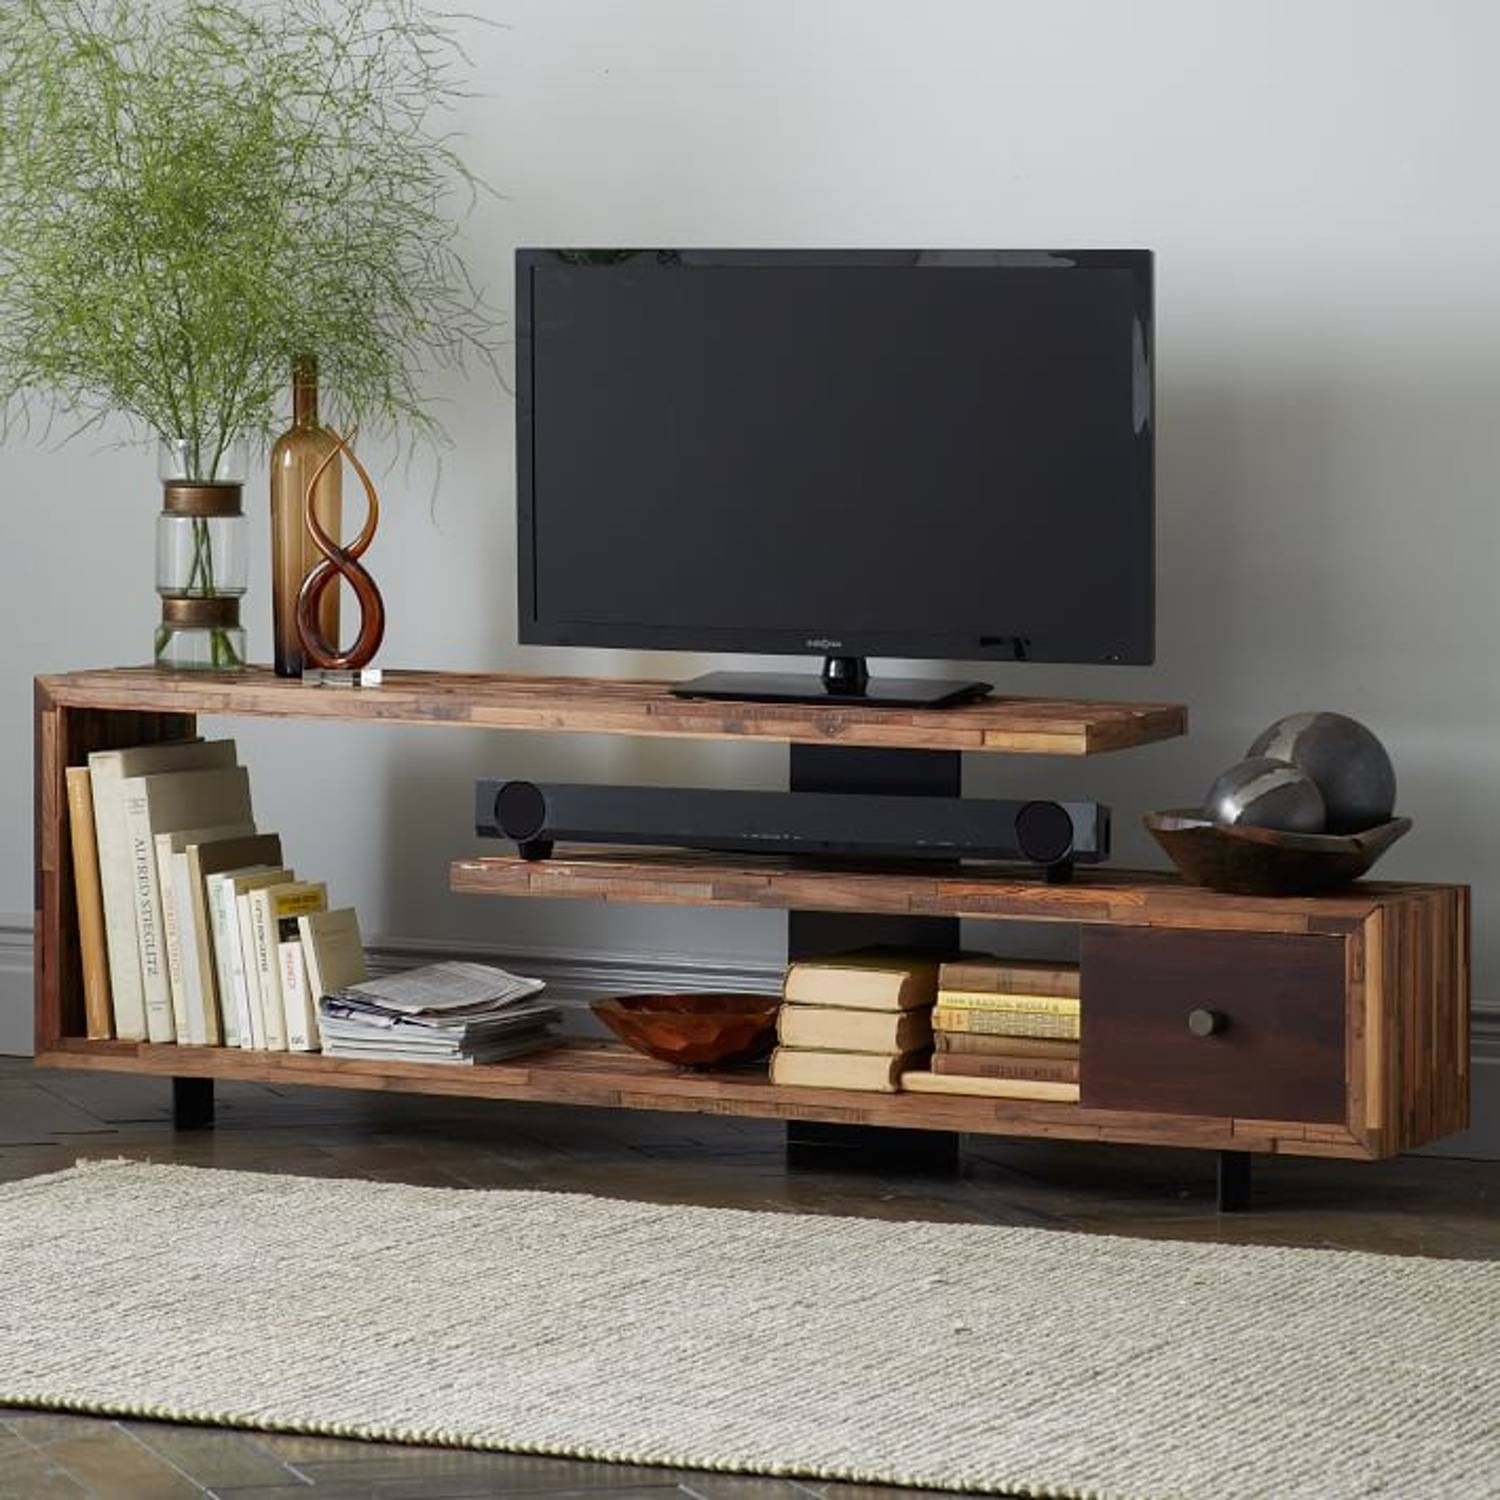 Luxury Affordable Tv Stands 71 In Small Home Remodel Ideas With Intended For Luxury Tv Stands (View 6 of 15)